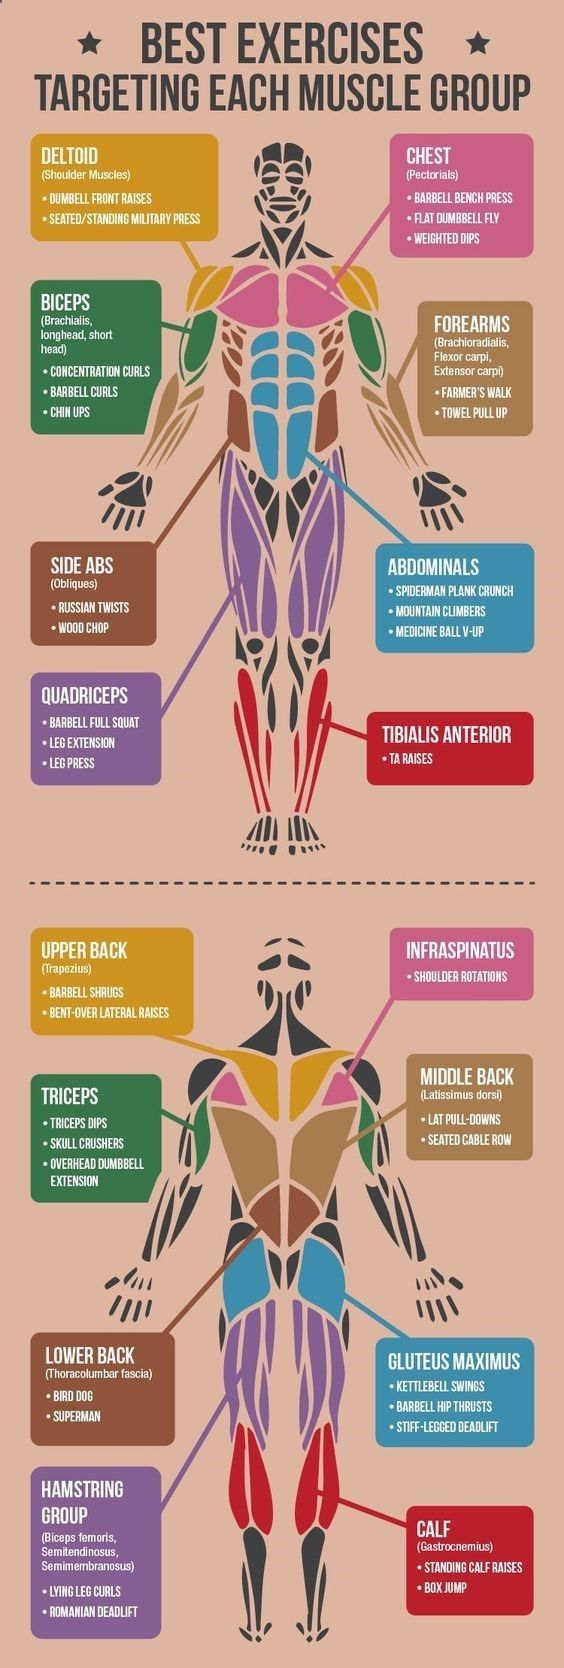 Imagenes De Gym Routine For Beginners Male Weight Loss